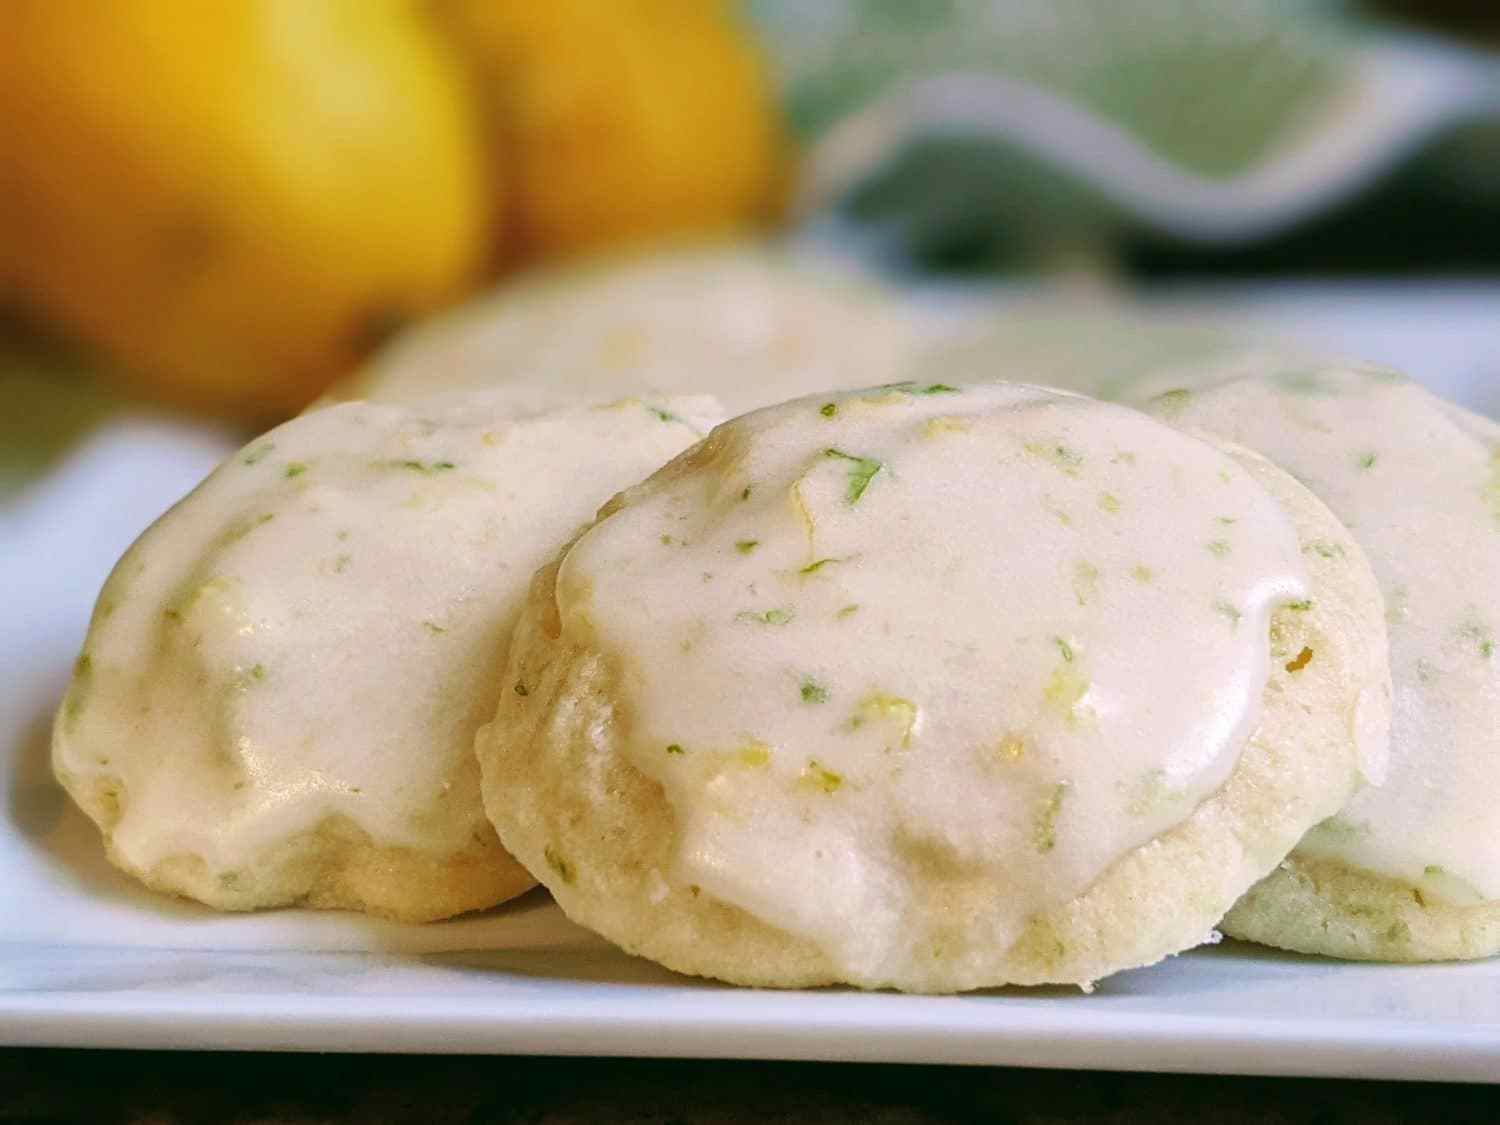 Lemon Lime Cookies Recipe - Perfect for Spring